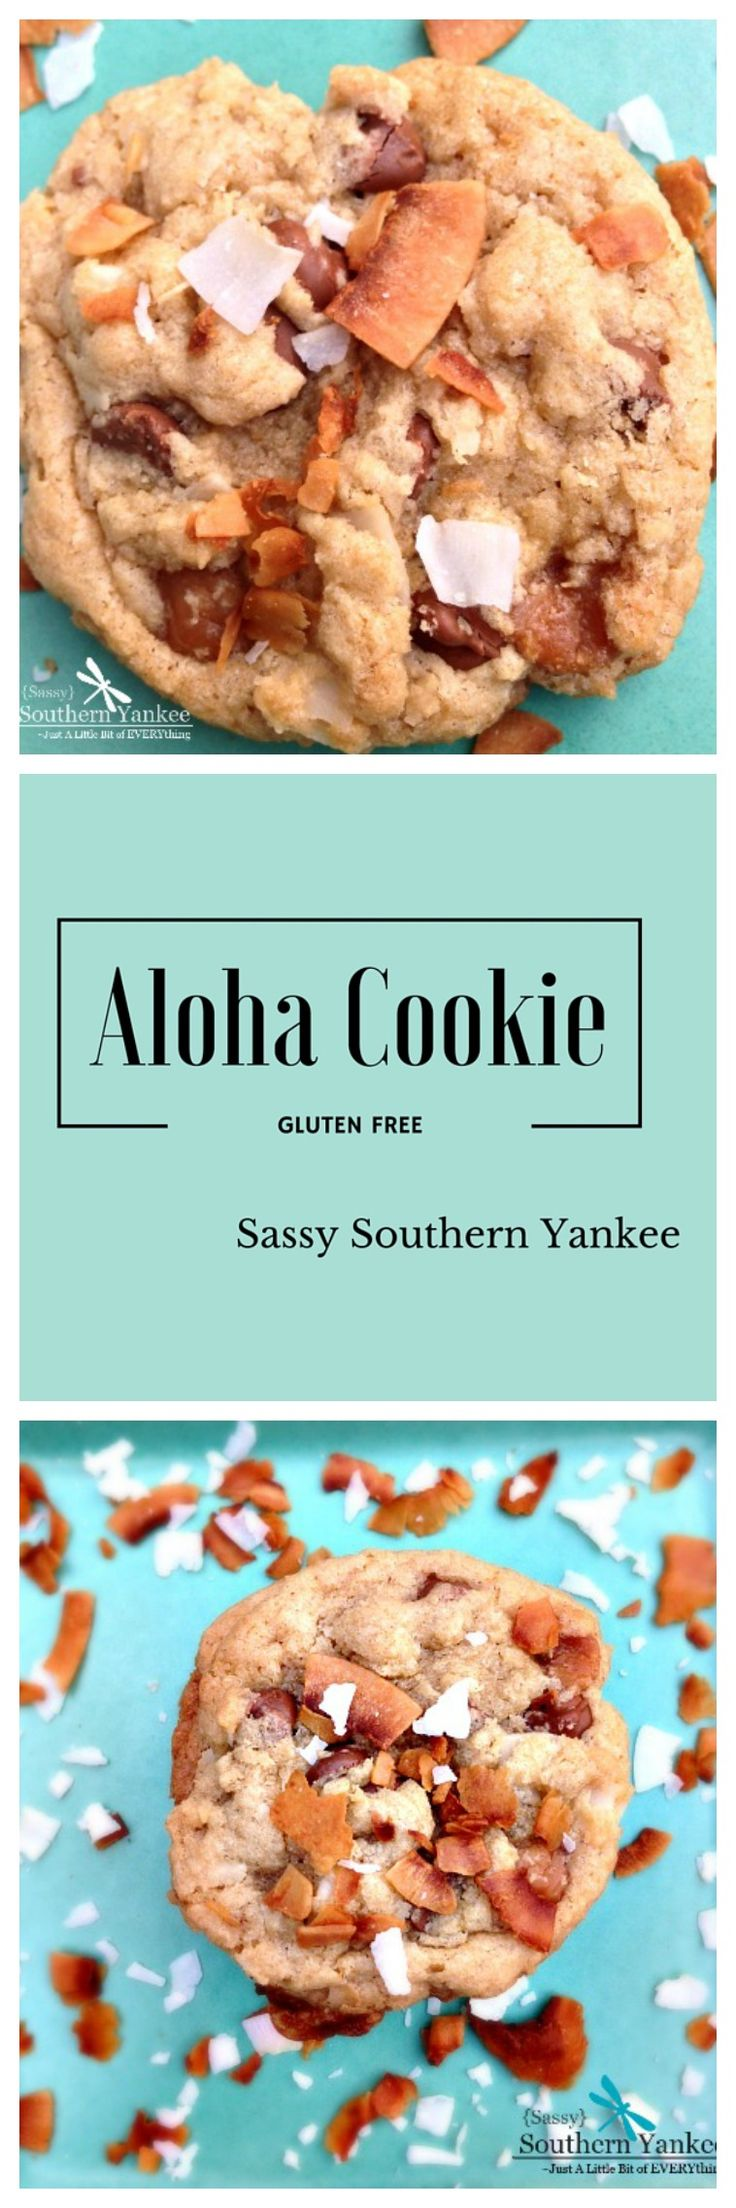 Hints of toasted coconut,  rich chocolate and creamy caramel make this Aloha Cookie my new favorite cookie! This is my take on those delicious girl scout cookies we all know and love.